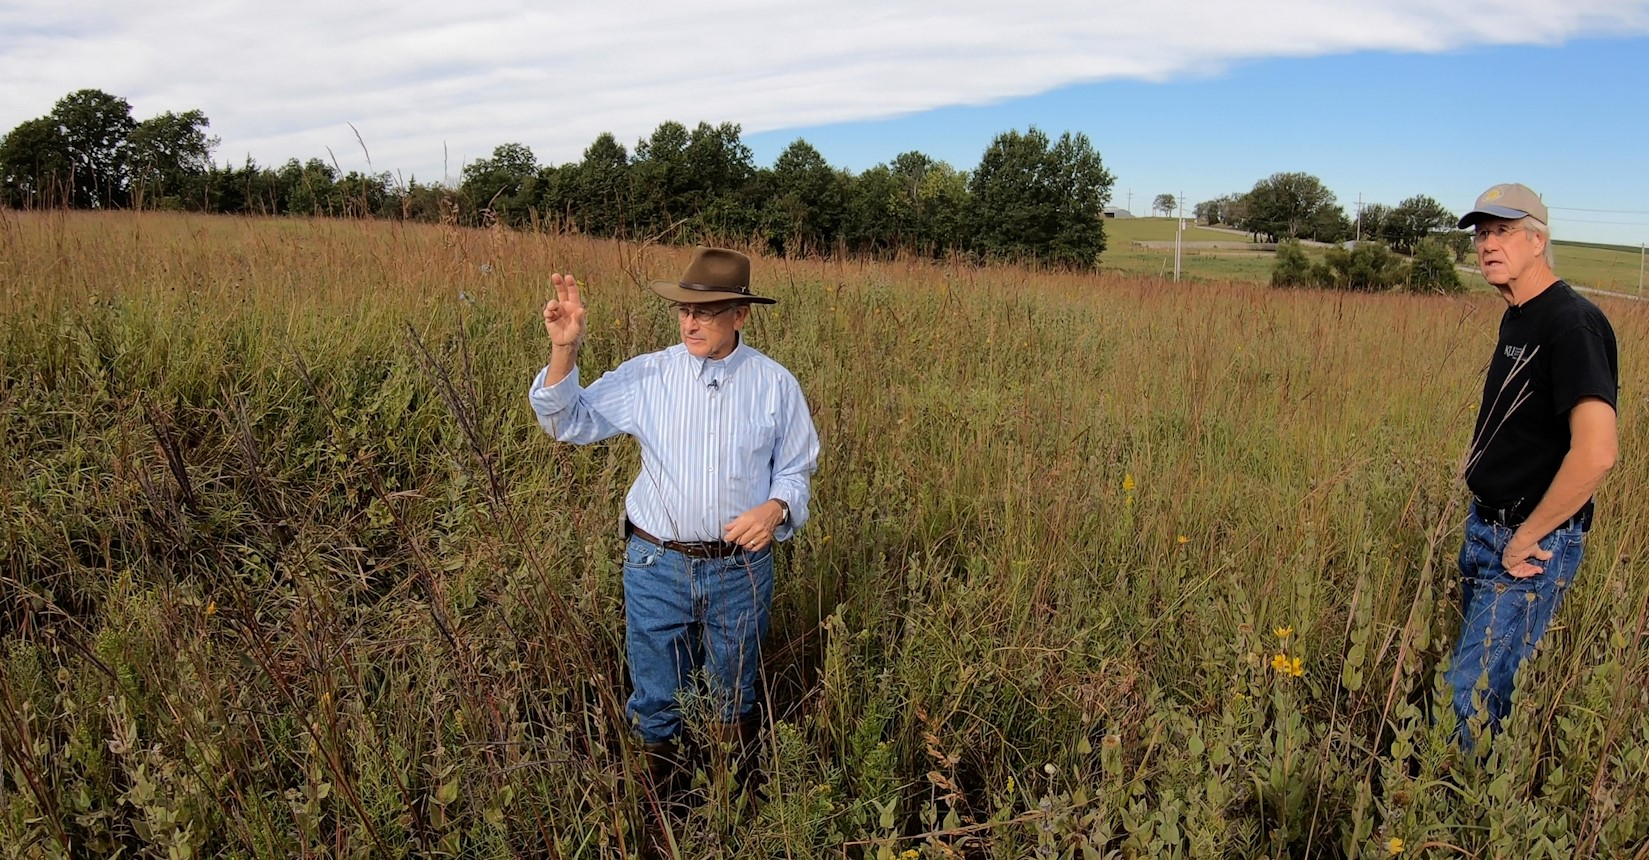 Roger Boyd, president of the Douglas County chapter of the Santa Fe Trail Association, speaking with Rex Buchanan, along the Santa Fe Trail near Baldwin City. (Photo by Dave Kendall)